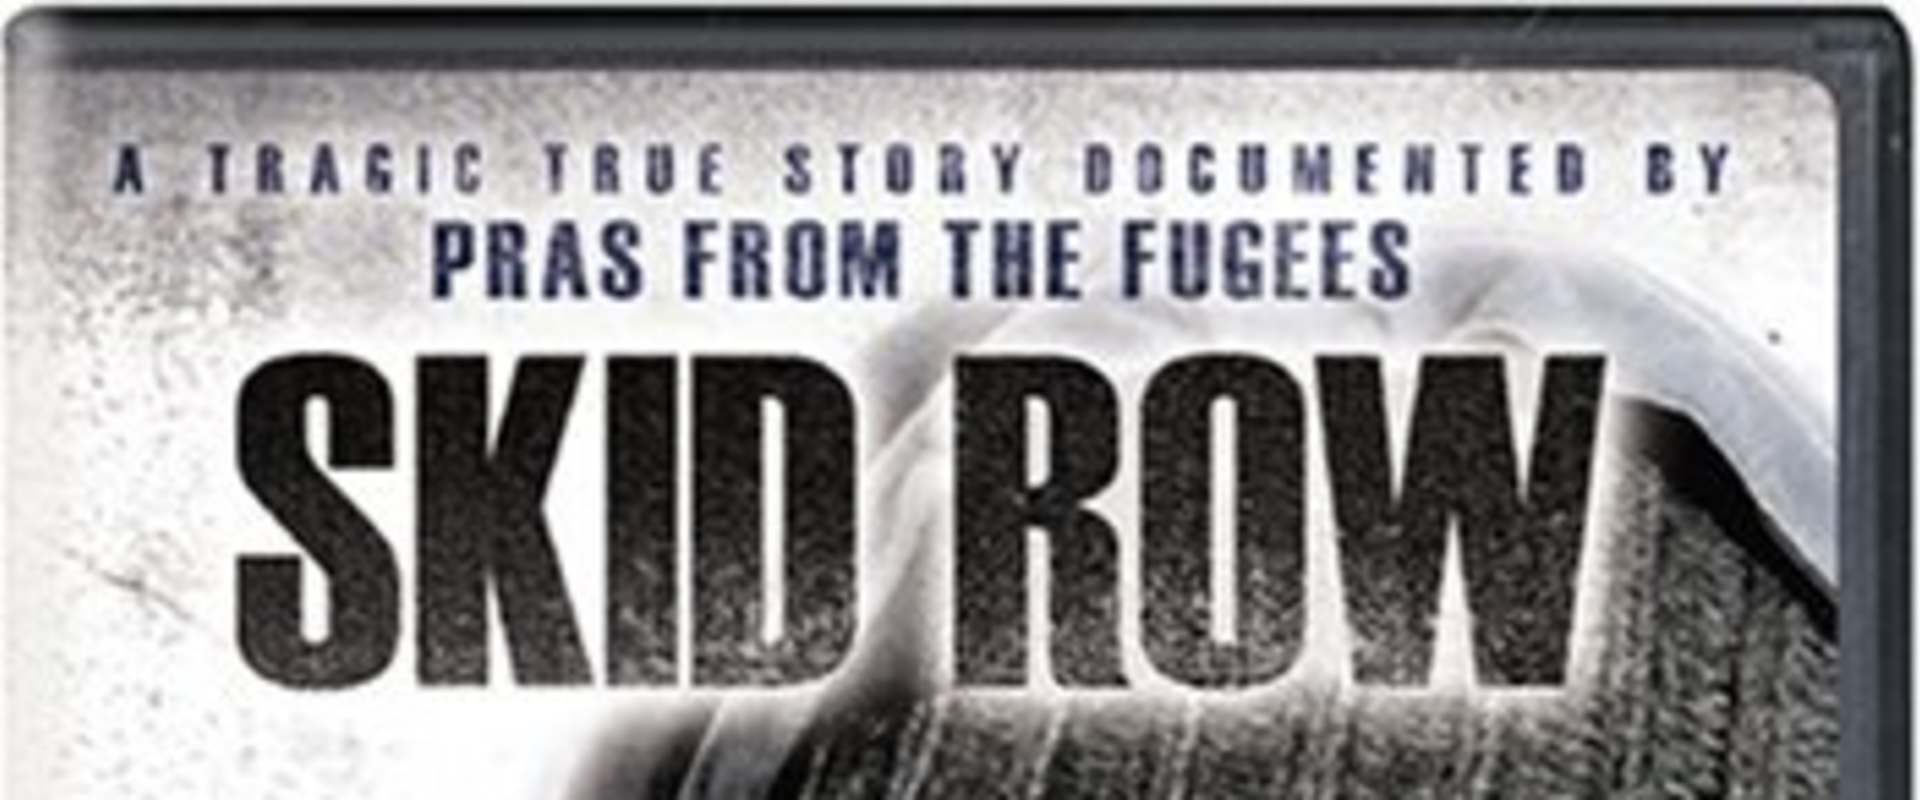 Skid Row background 1